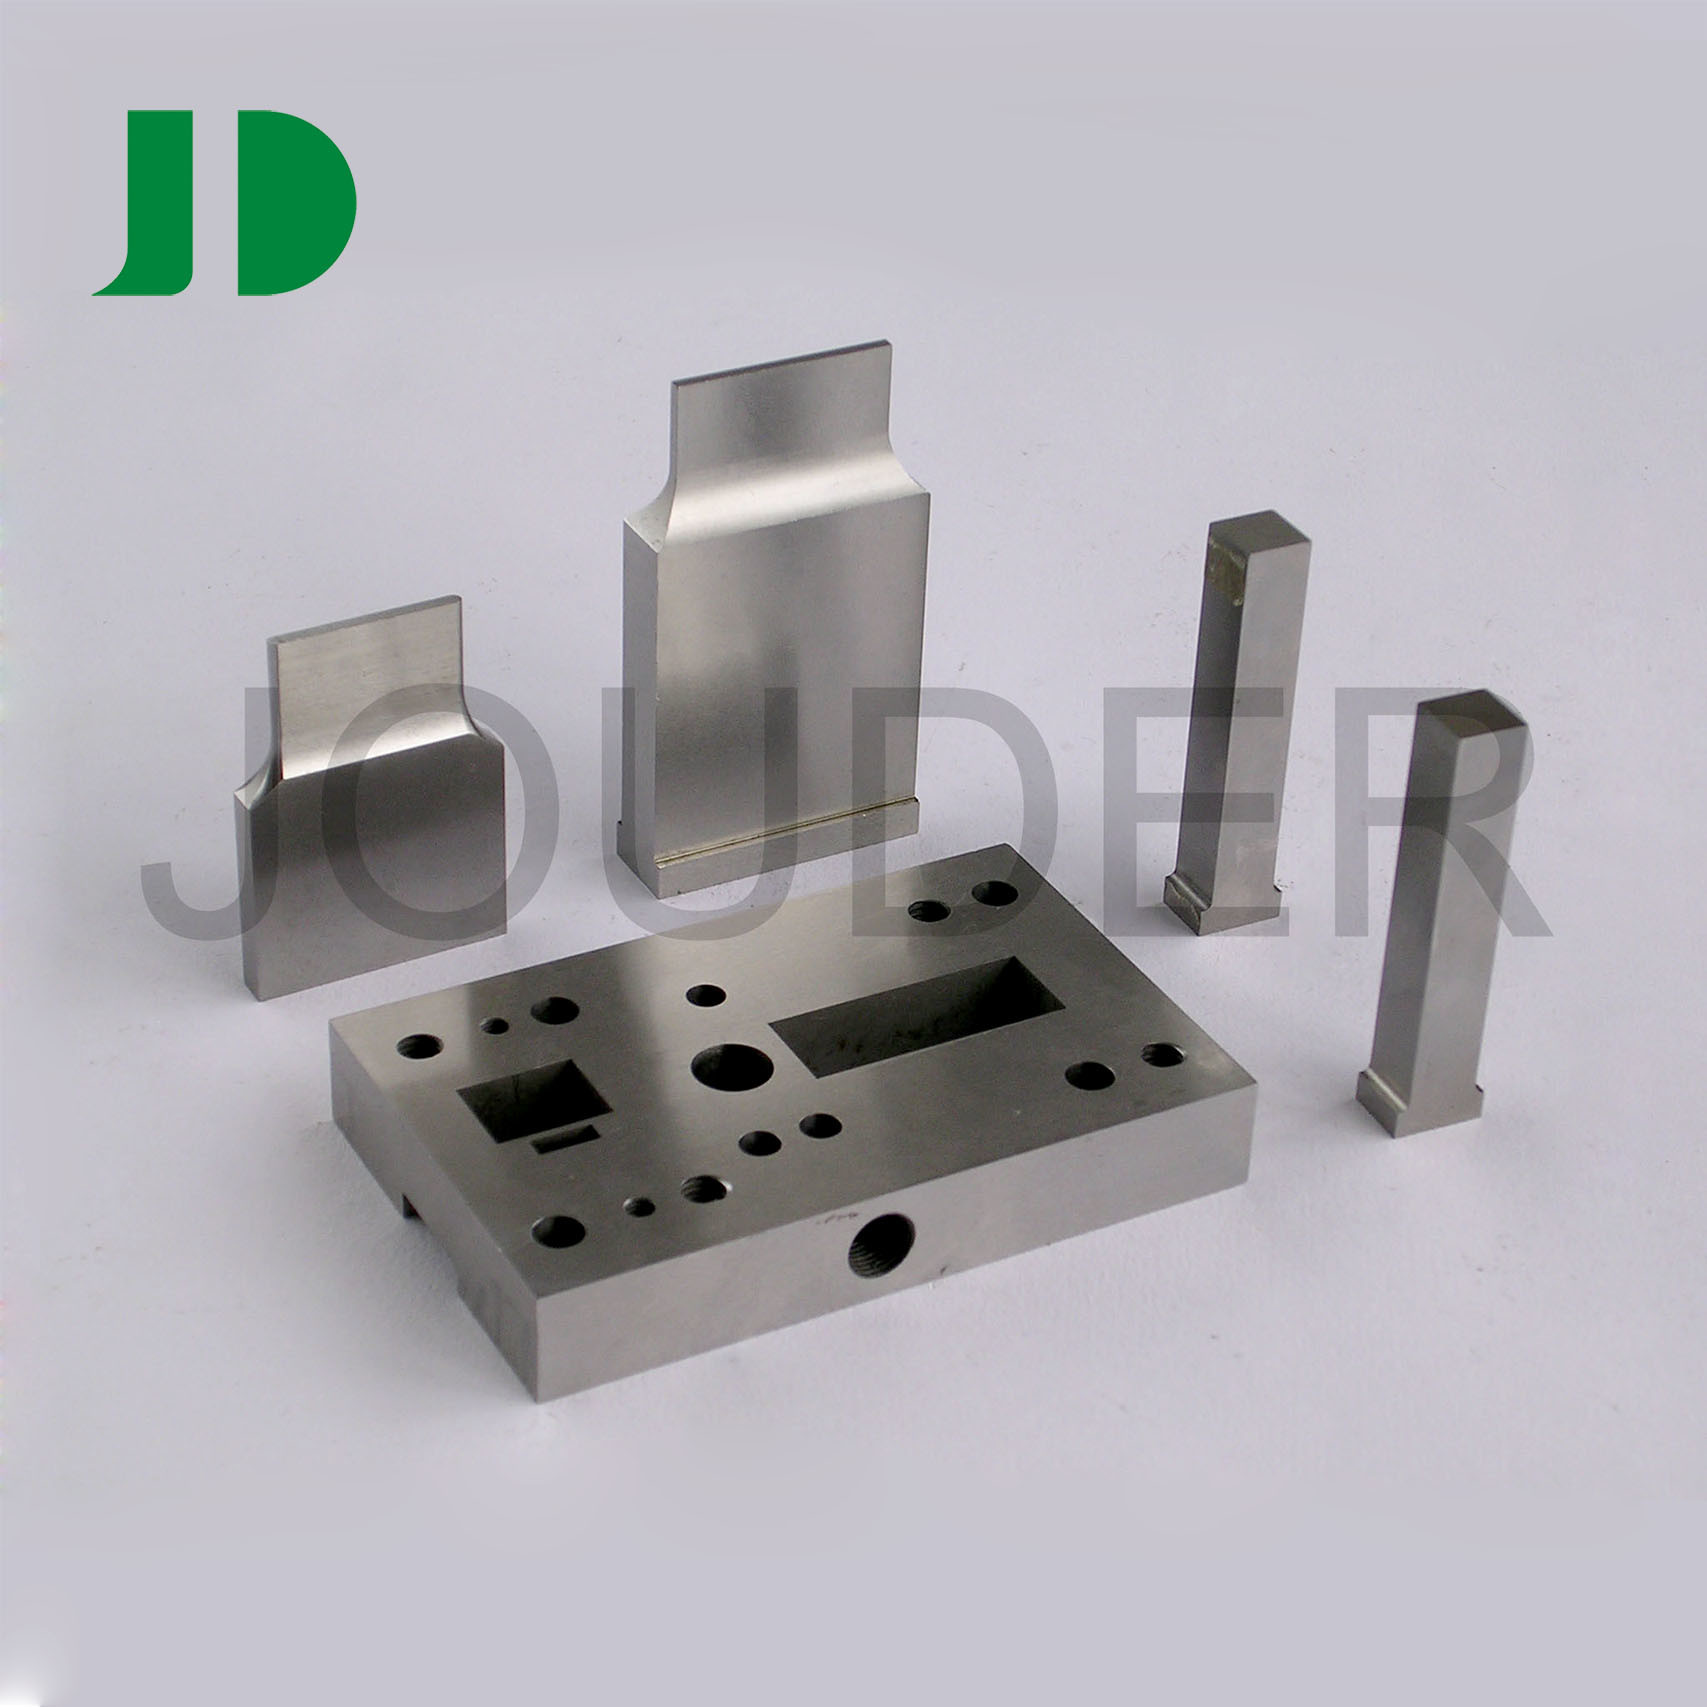 Special Square Mold Part as Per Drawing